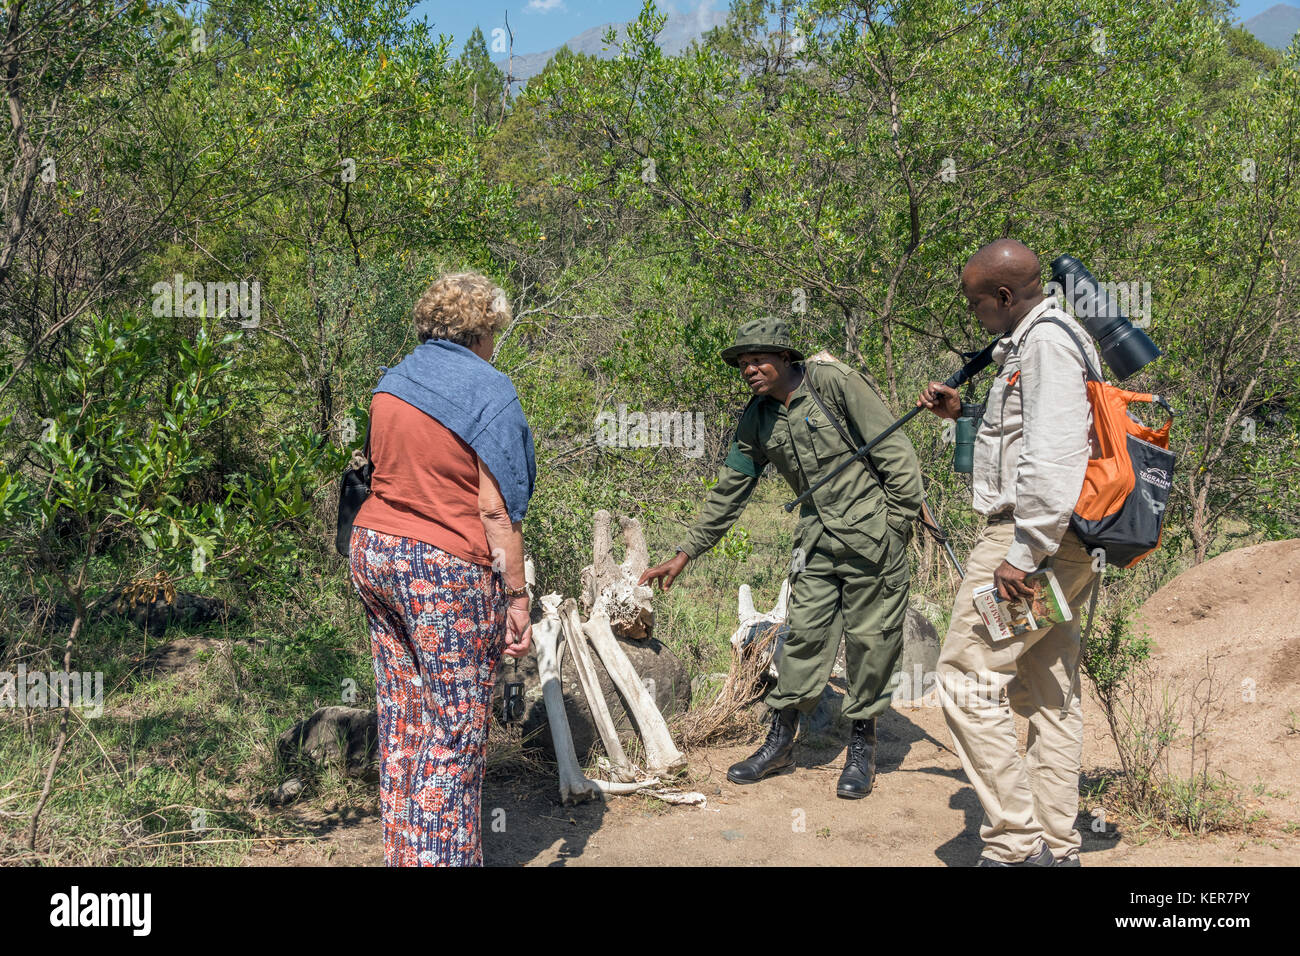 Guide and tourist examining giraffe skeleton with a ranger 1, Arusha NP, Tanzania - Stock Image